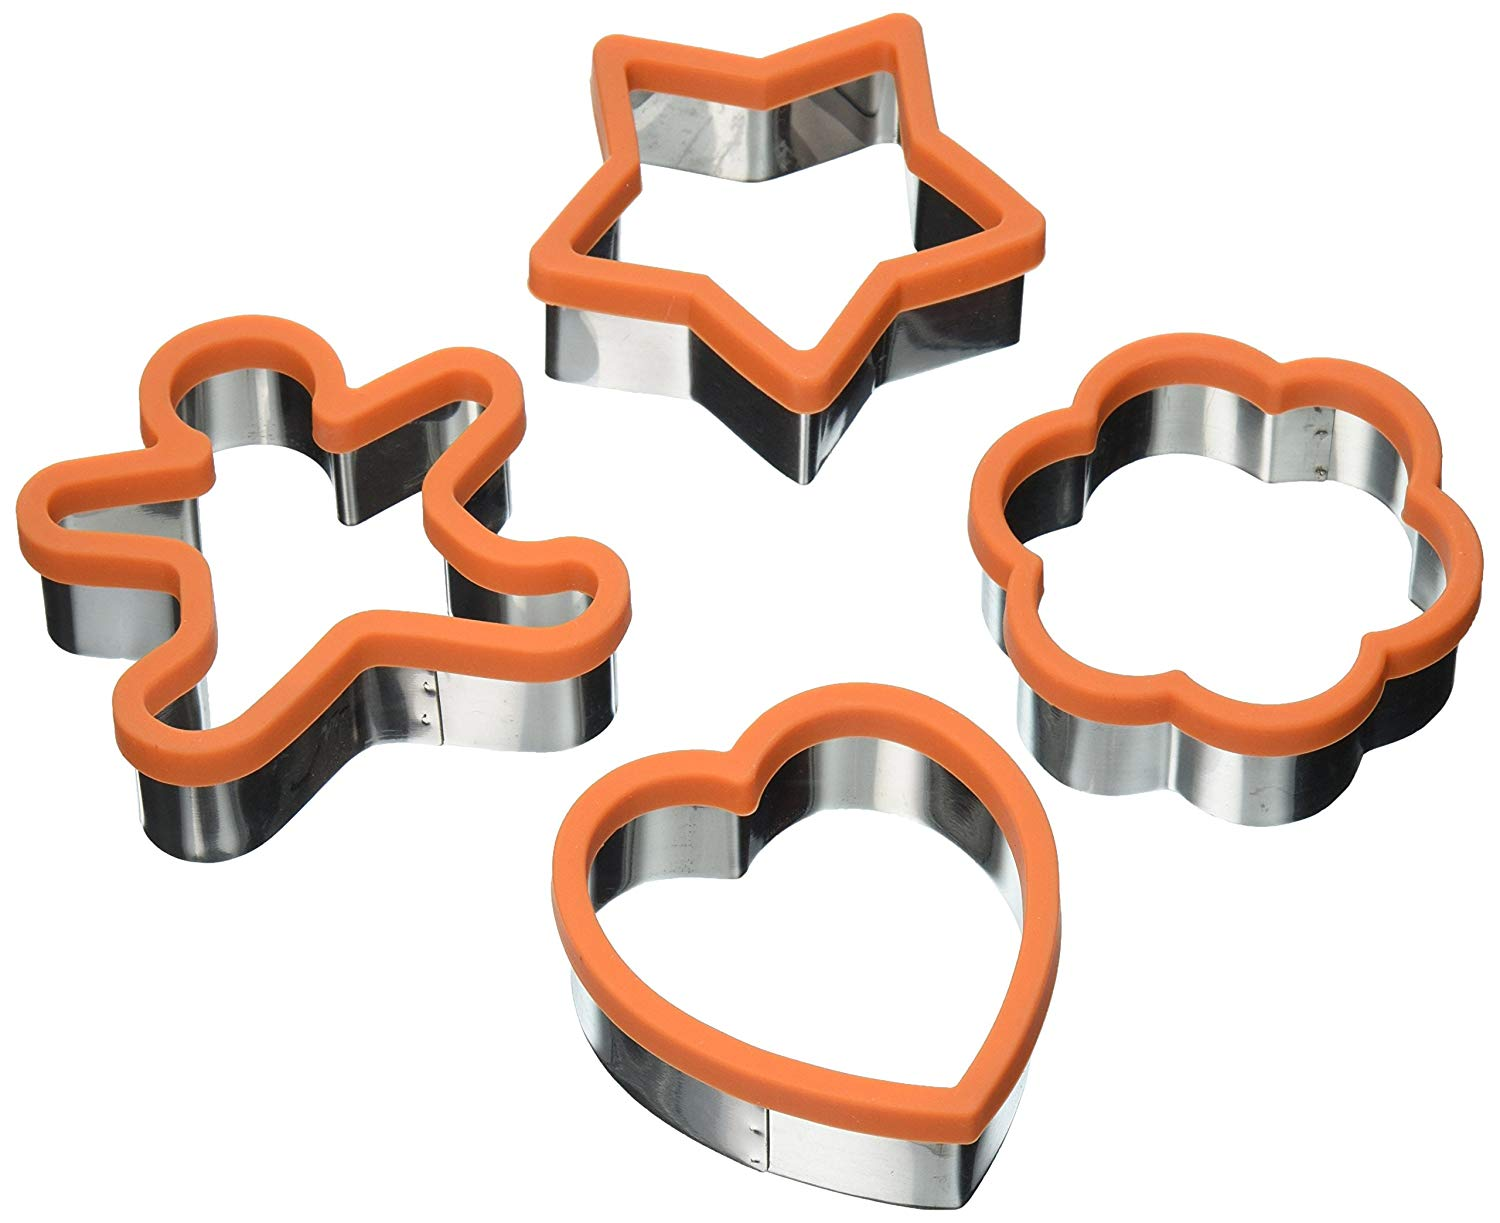 Uniware Cute Large 3 Inches Stainless Steel Cookie Cutter Set of 4 (Heart Cookie Cutter, Star Cookie Cutter and Flower Cookie Cutter, Ginger Bread Man Cookie Cutter) (Orange)